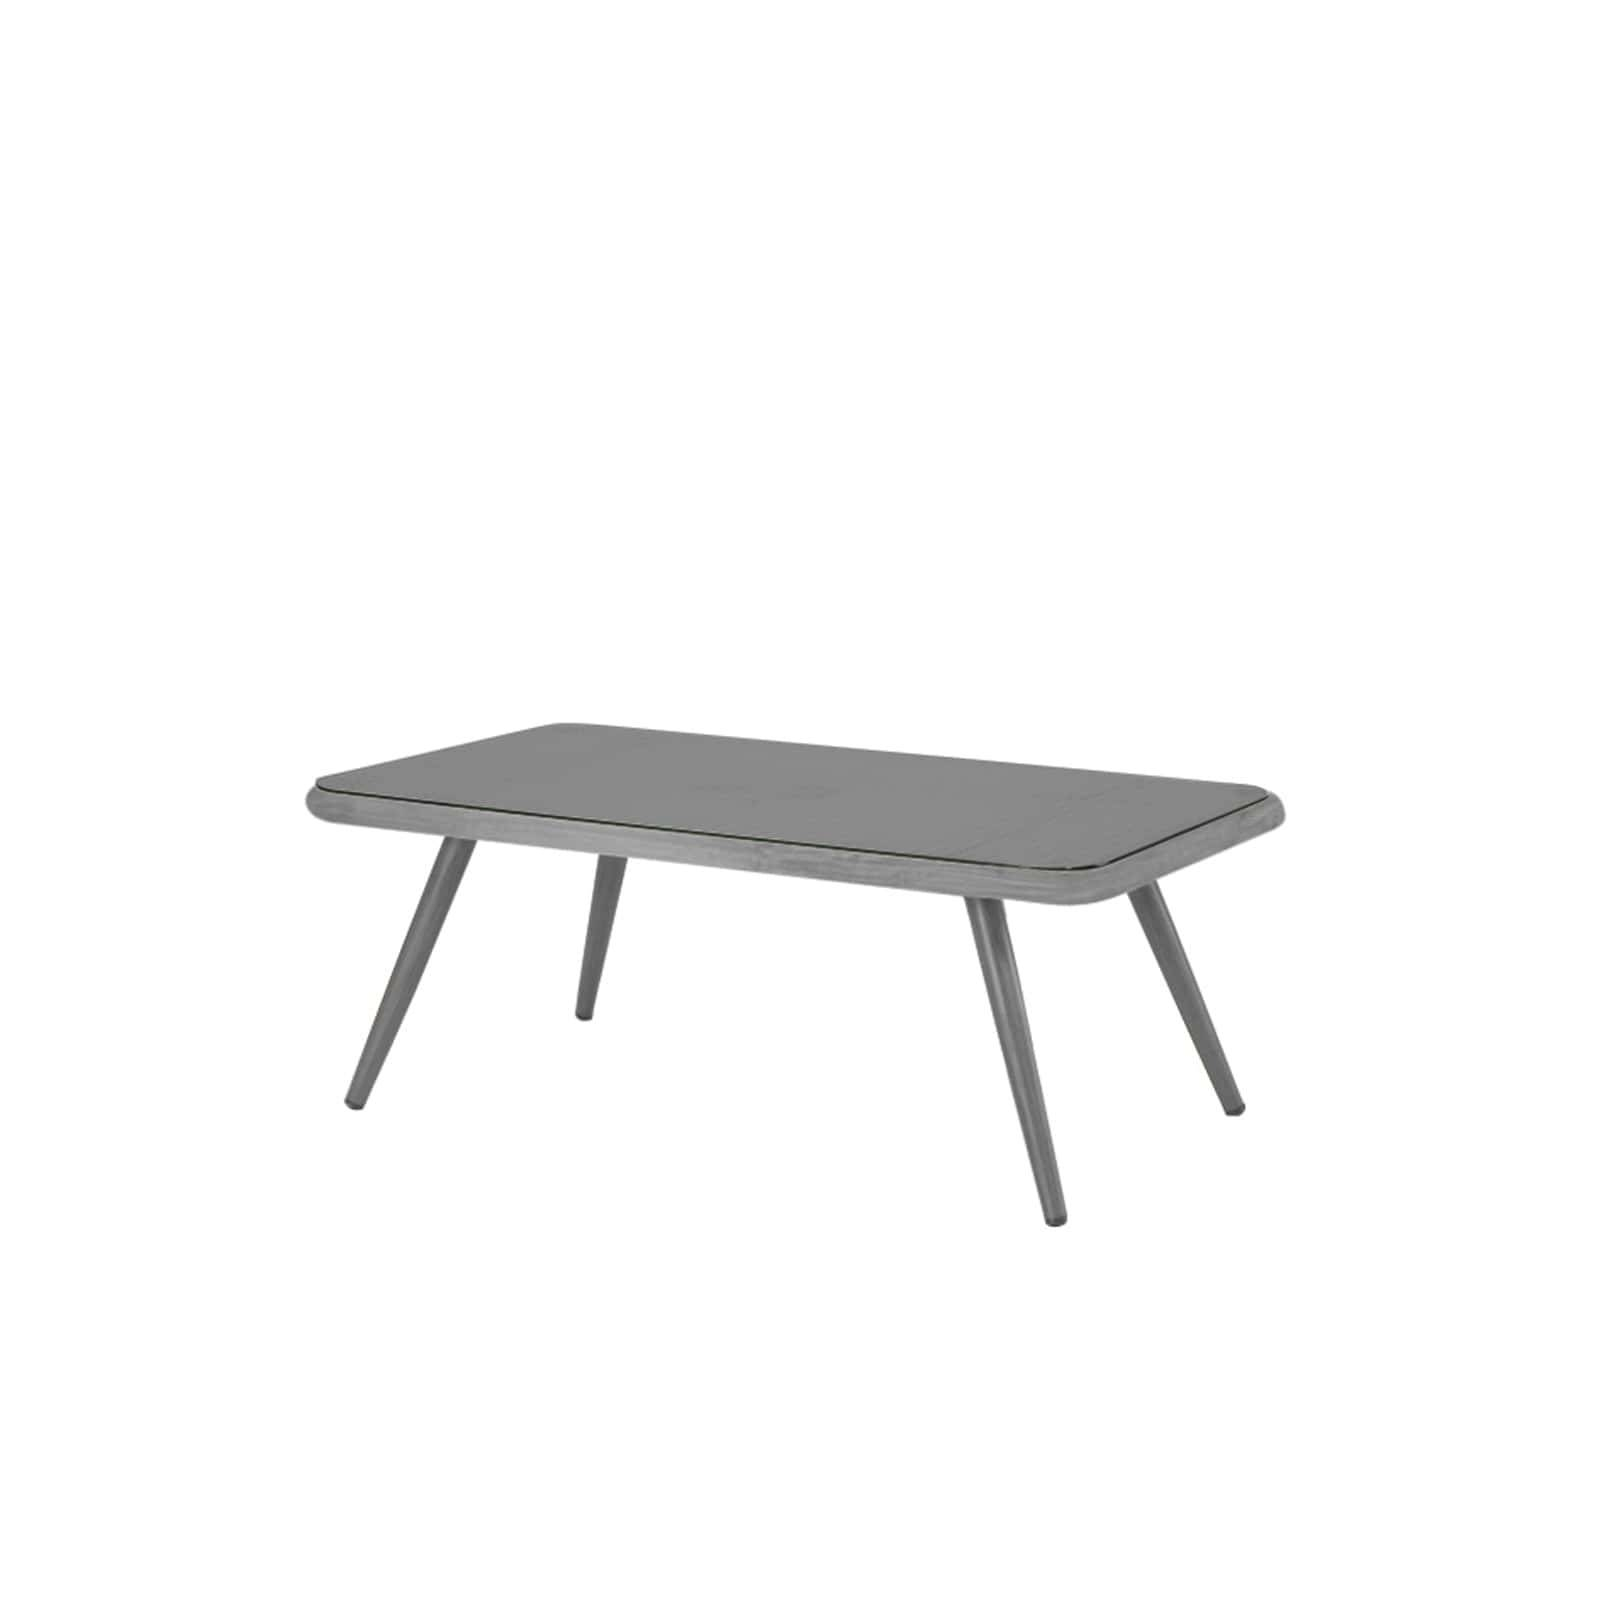 Cosmo Coffee Table | Source Furniture | Commercial Outdoor Furniture throughout Cosmo Coffee Tables (Image 22 of 30)